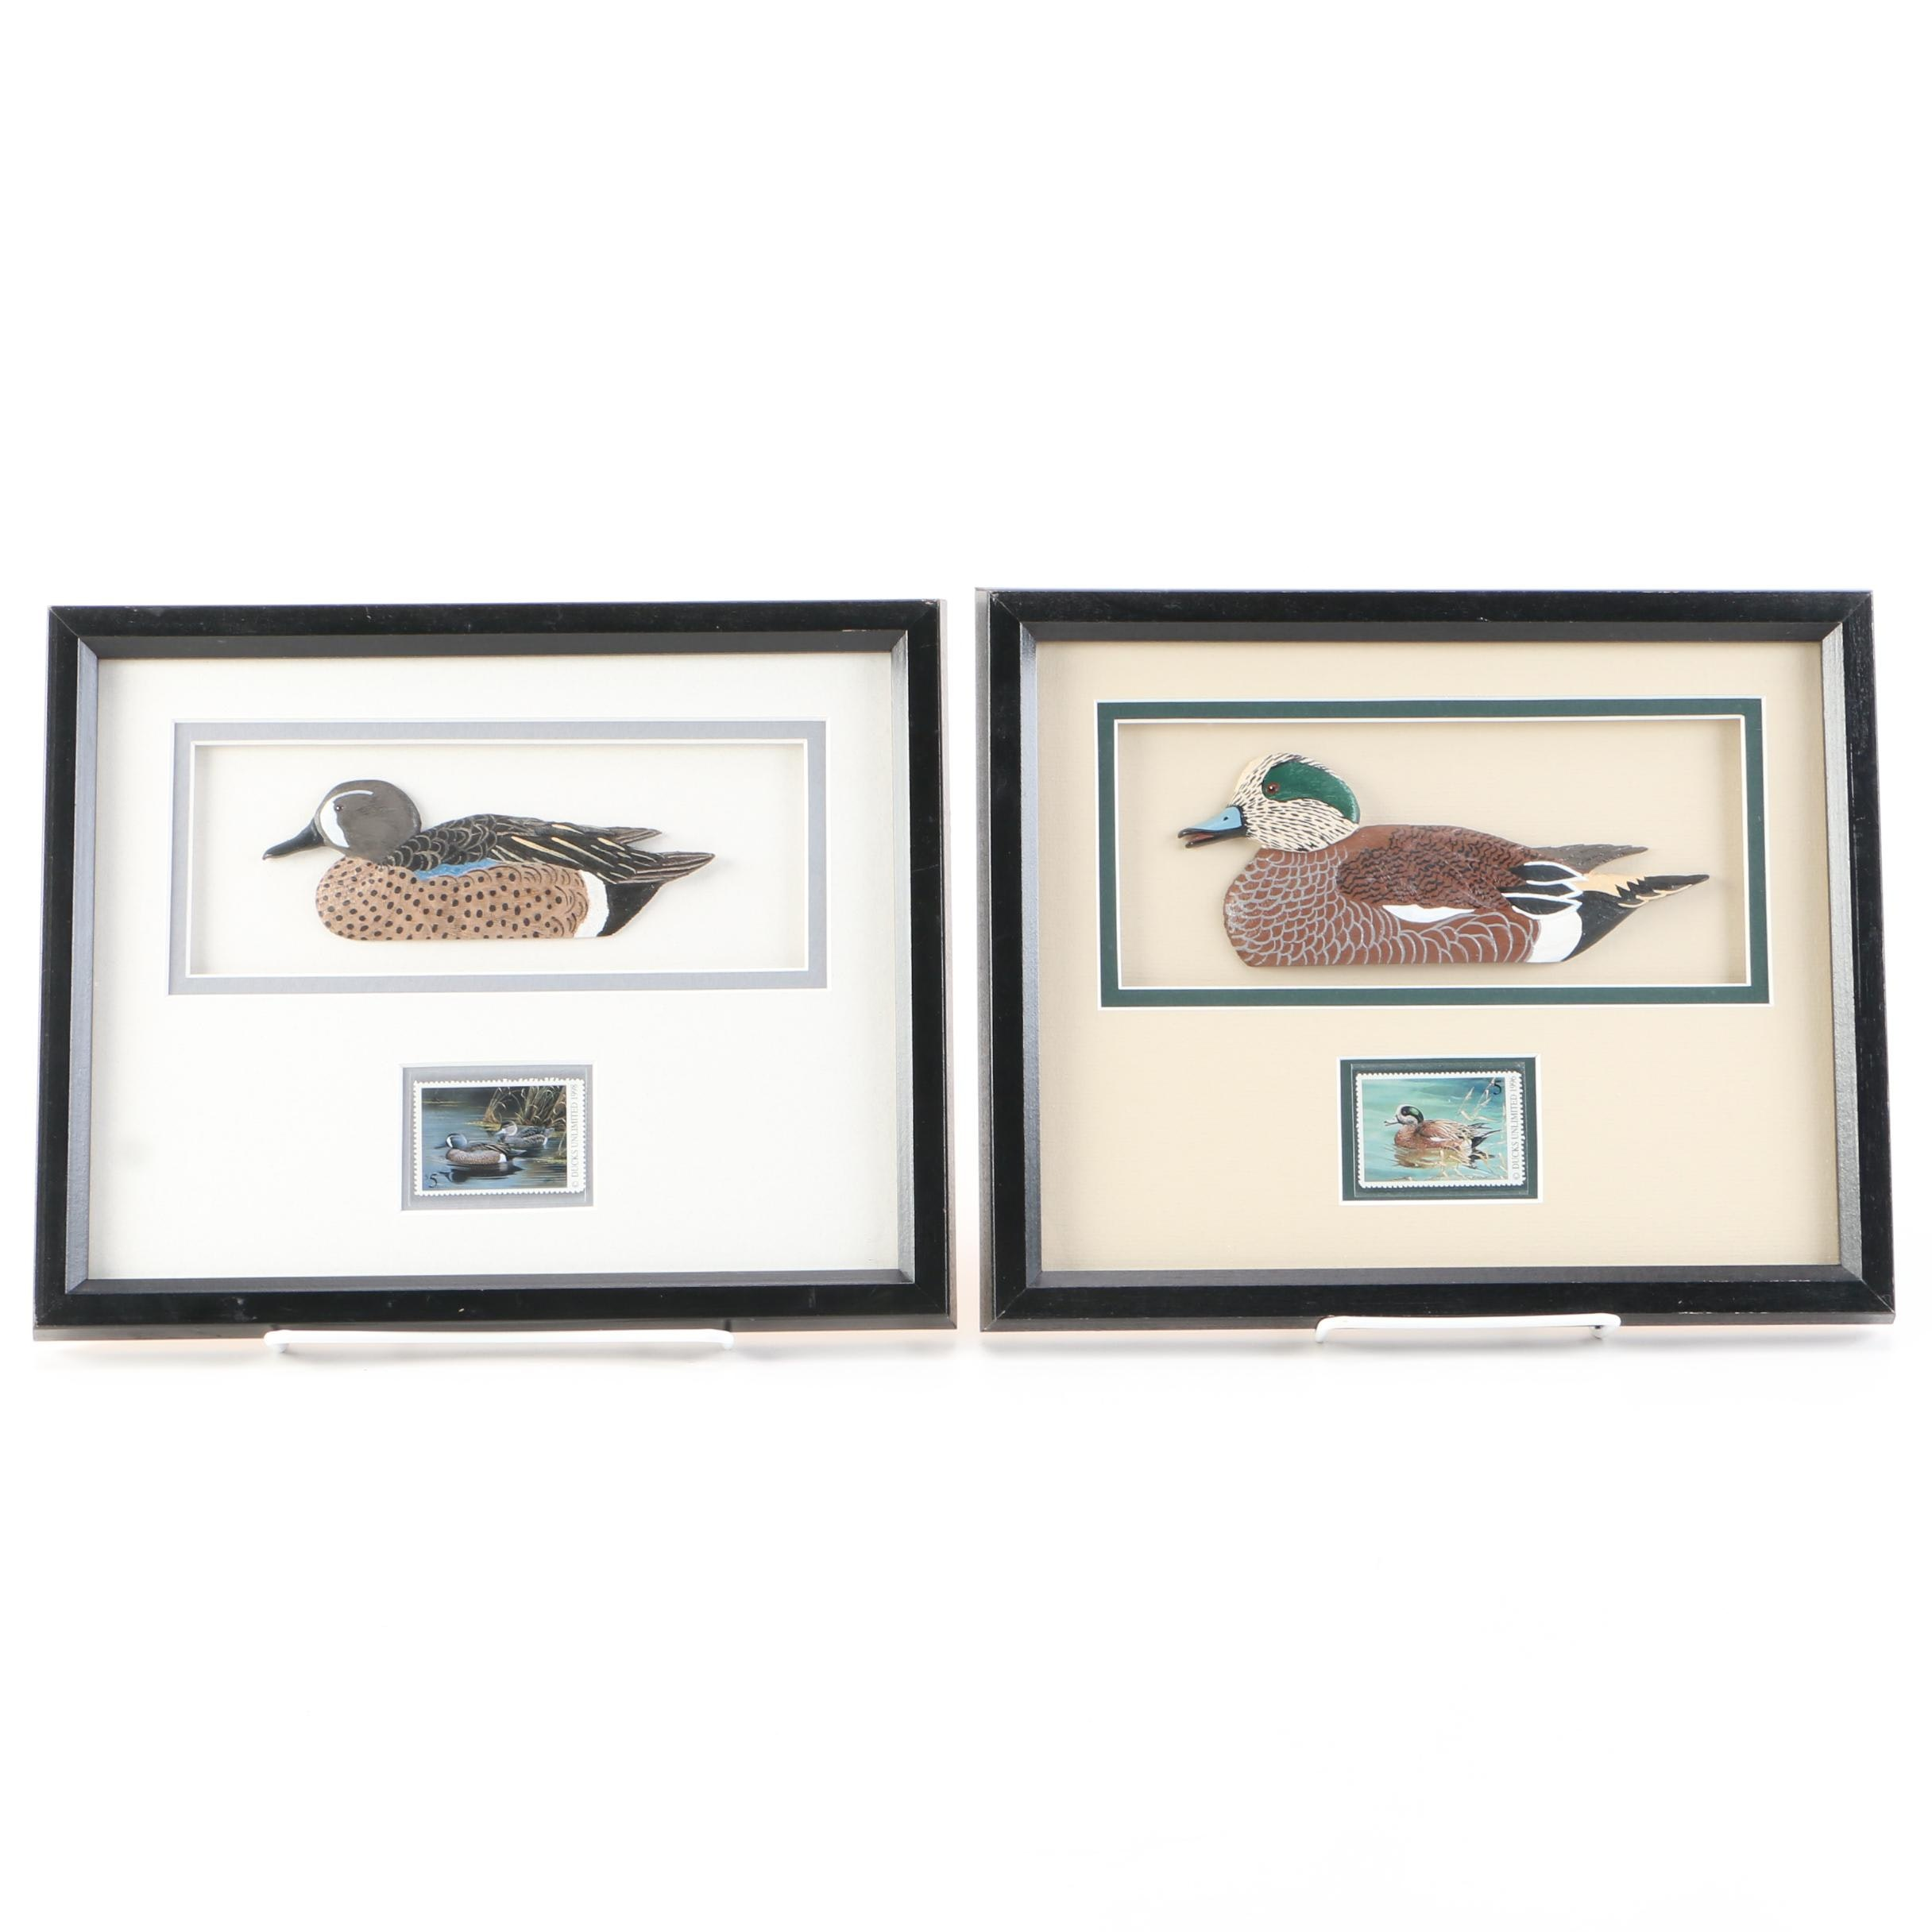 After Wilhelm Goebel and Ralph McDonald Carved Wooden Duck Reliefs